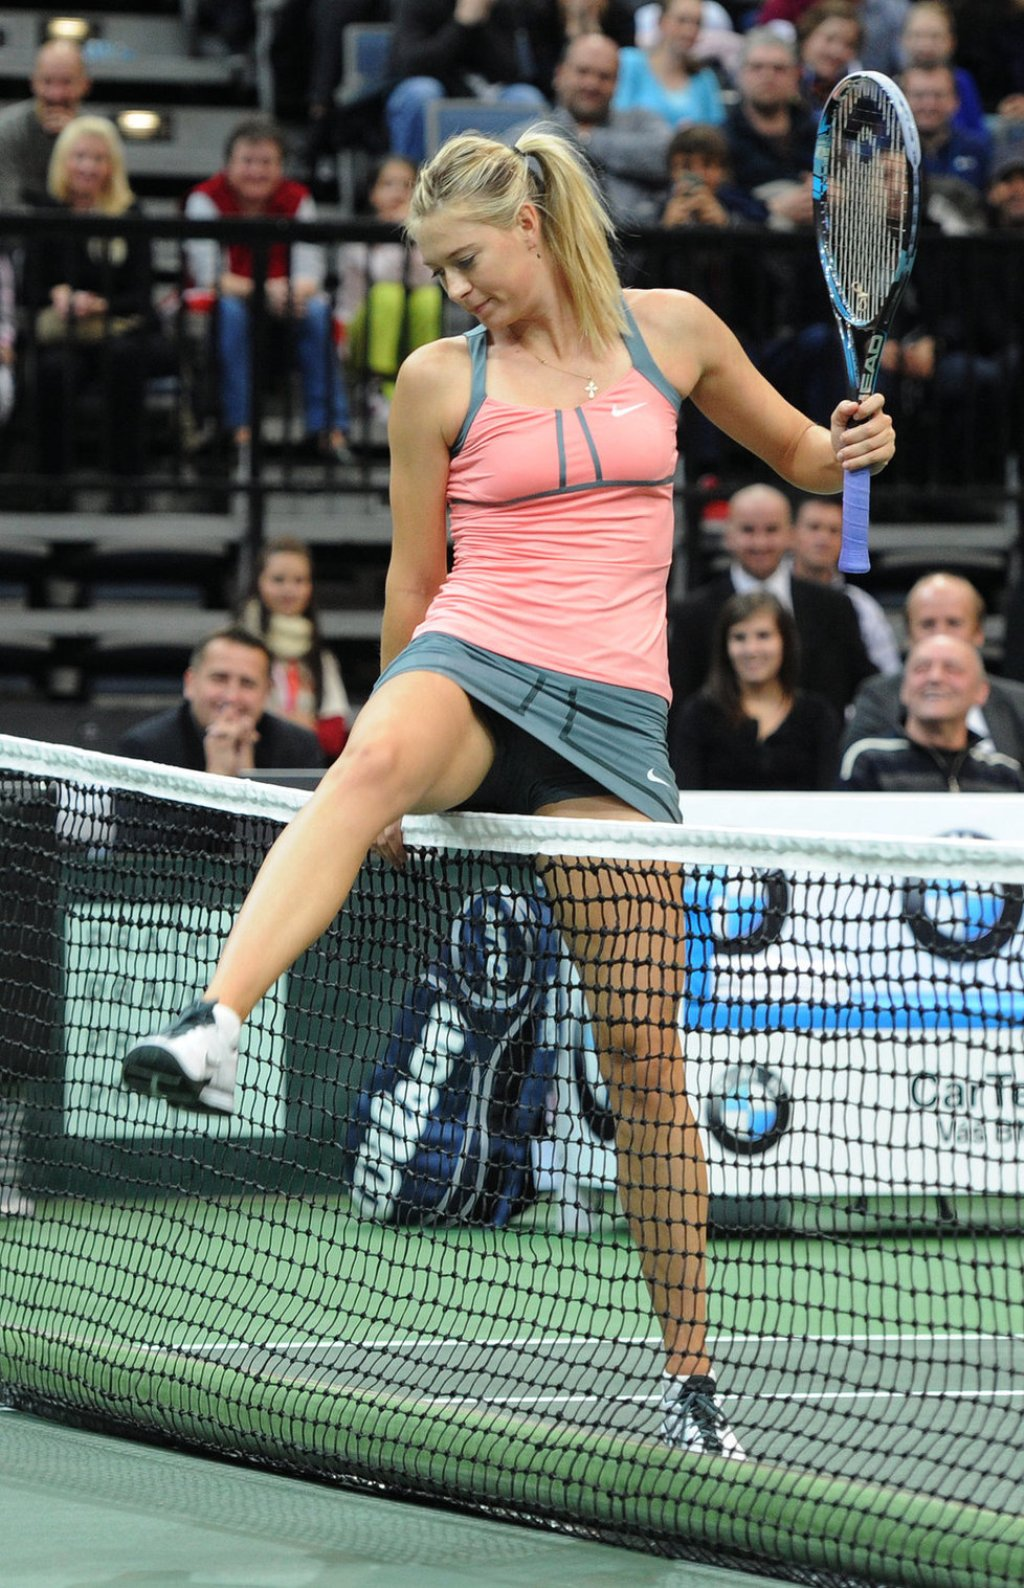 Tennis Sharapova crotch